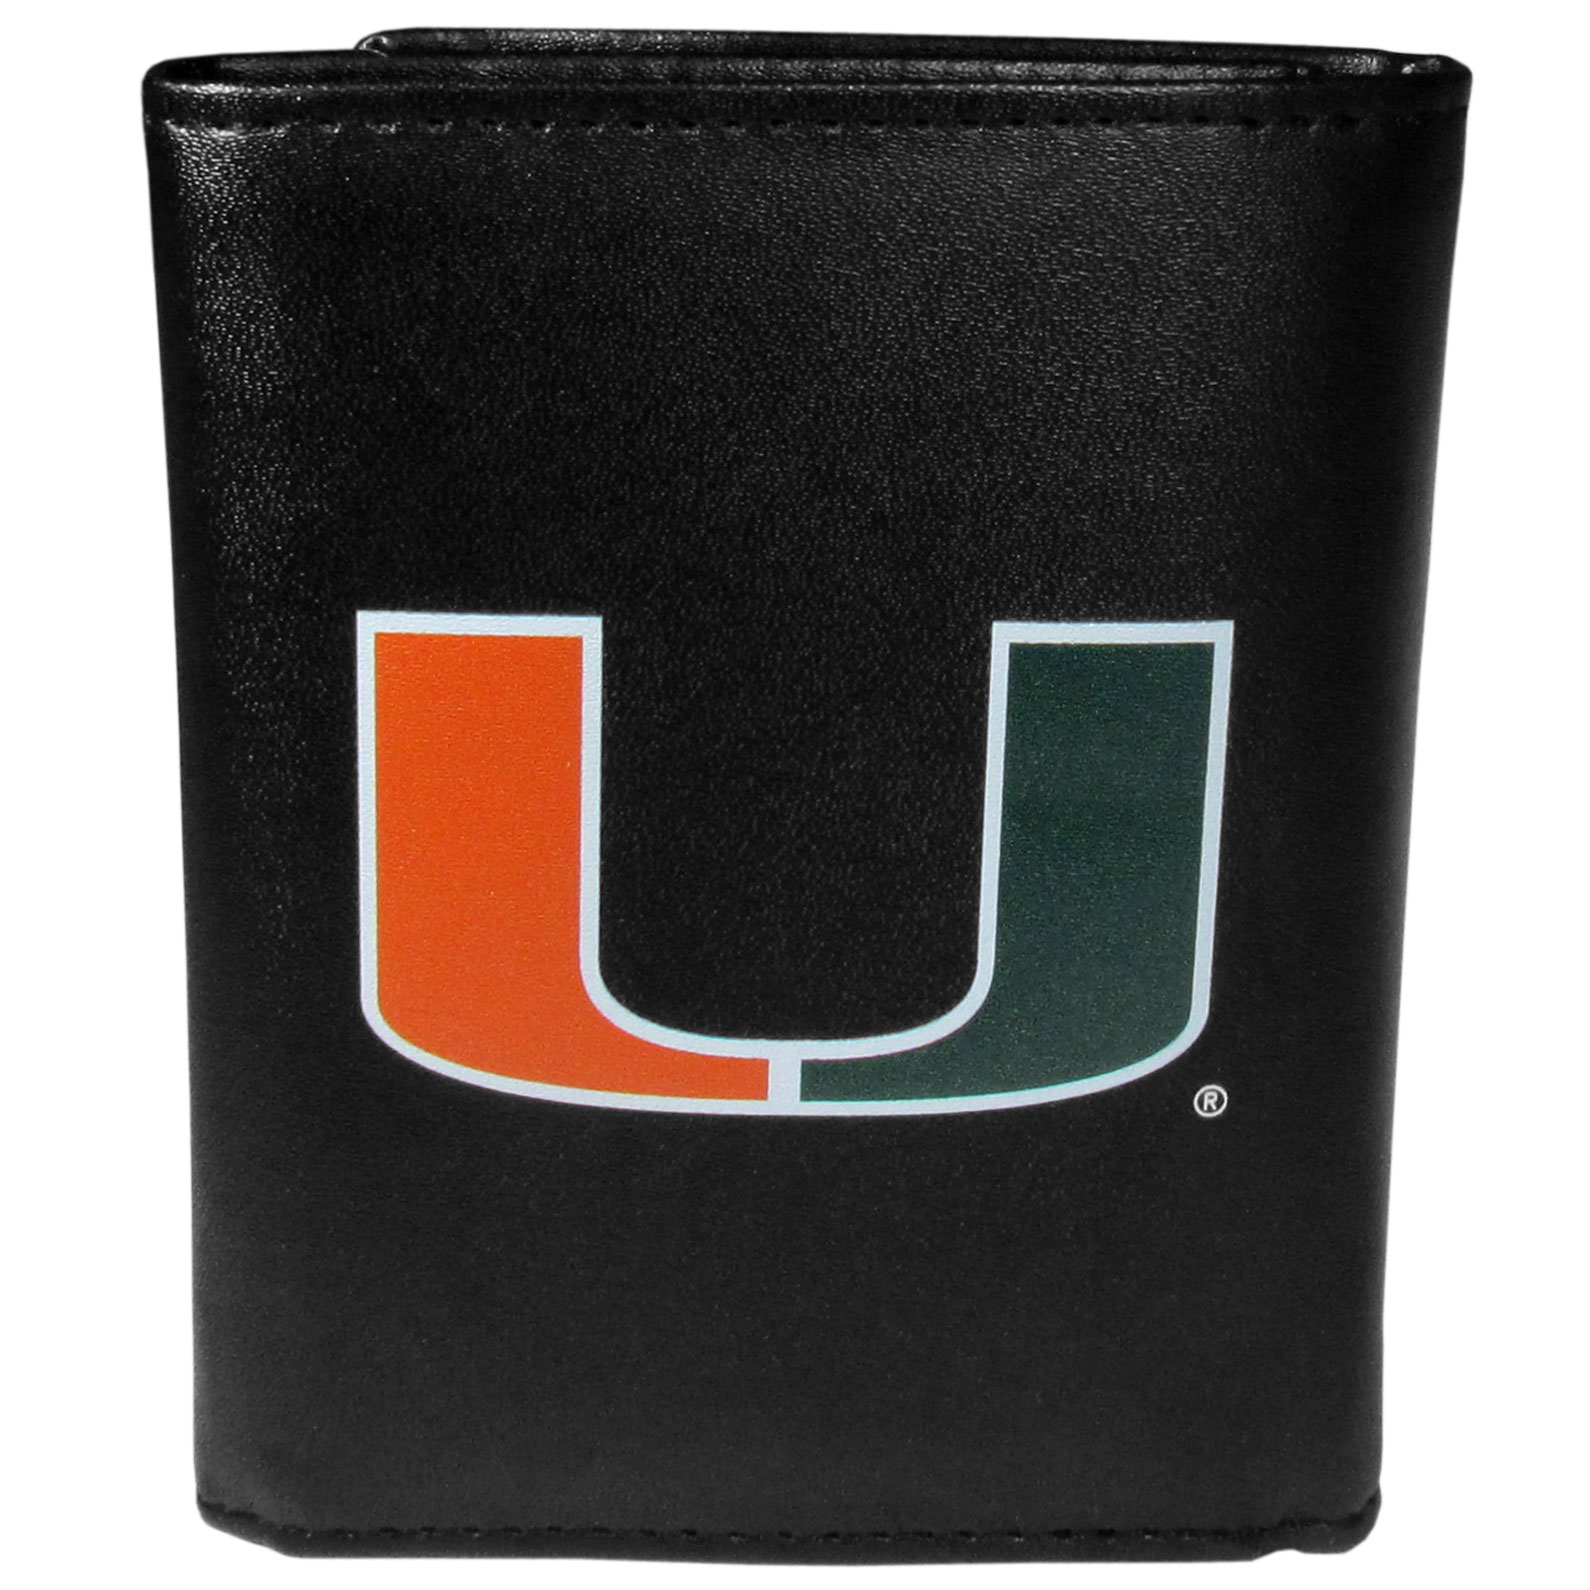 Miami Hurricanes Leather Tri-fold Wallet, Large Logo - Our classic fine leather tri-fold wallet is meticulously crafted with genuine leather that will age beautifully so you will have a quality wallet for years to come. This is fan apparel at its finest. The wallet is packed with organizational  features; lots of credit card slots, large billfold pocket, and a window ID slot. The front of the wallet features an extra large Miami Hurricanes printed logo.